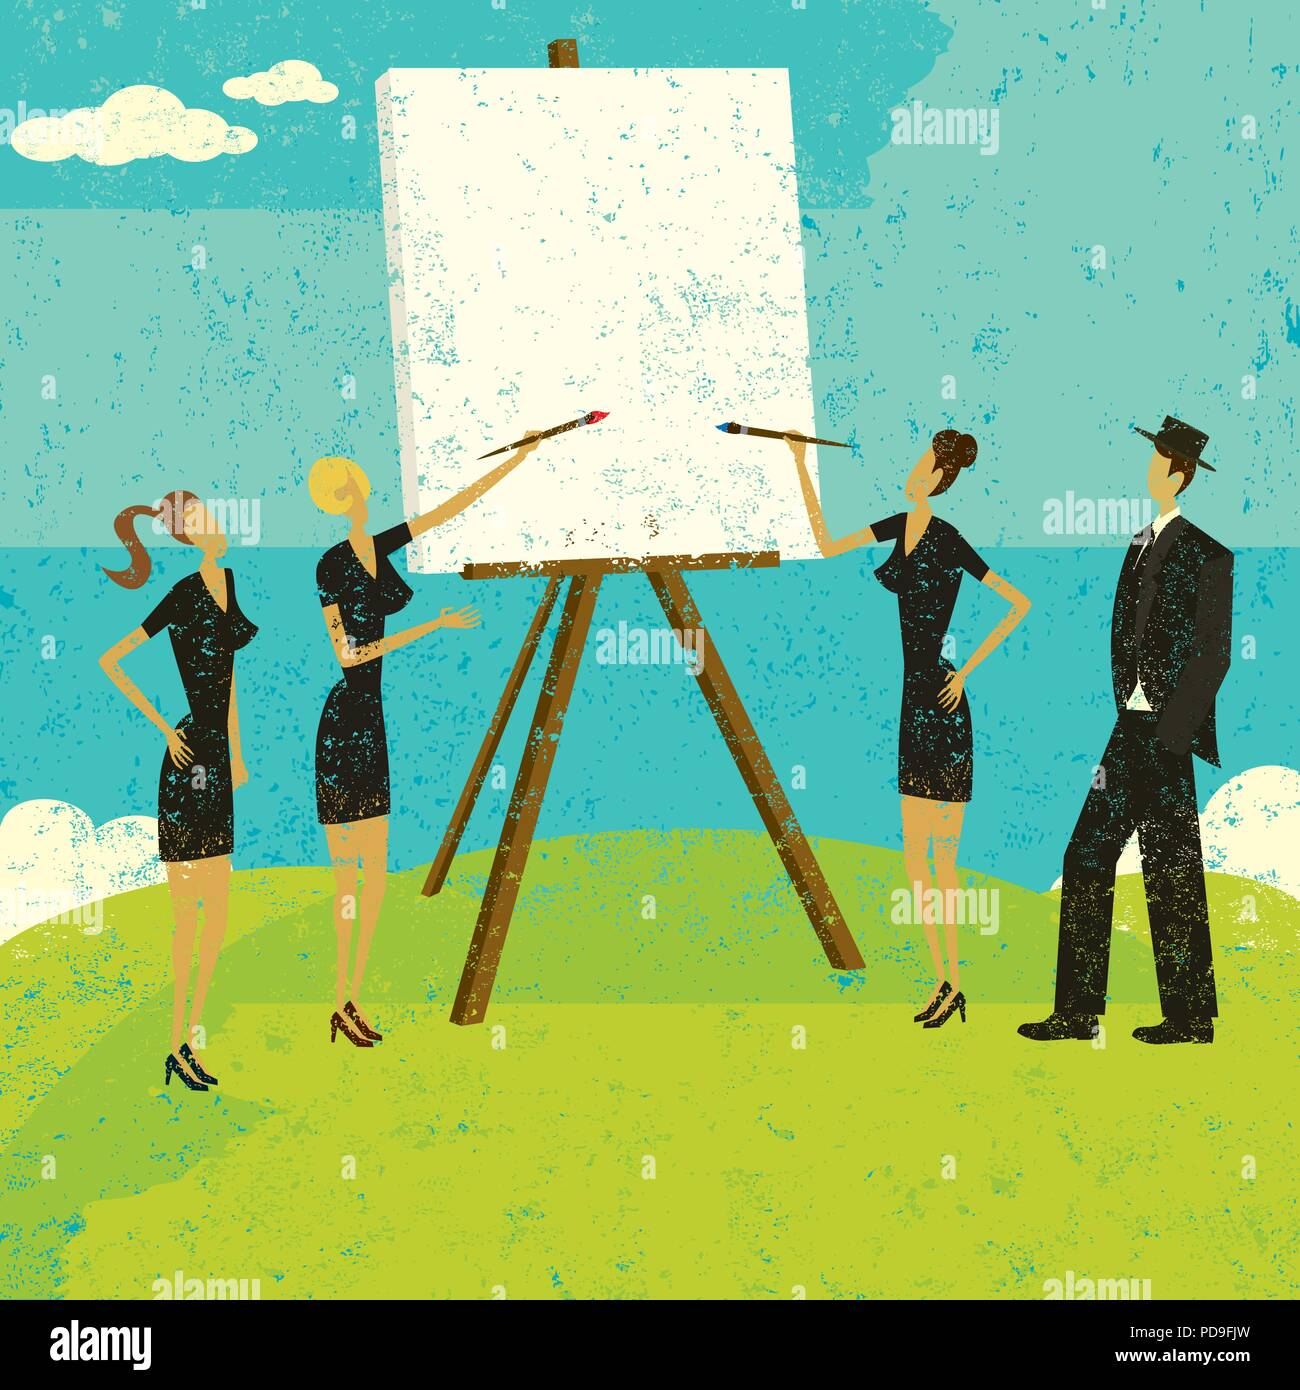 Working with a Blank Canvas. Business people working with a blank canvas to figure out their strategy. - Stock Vector